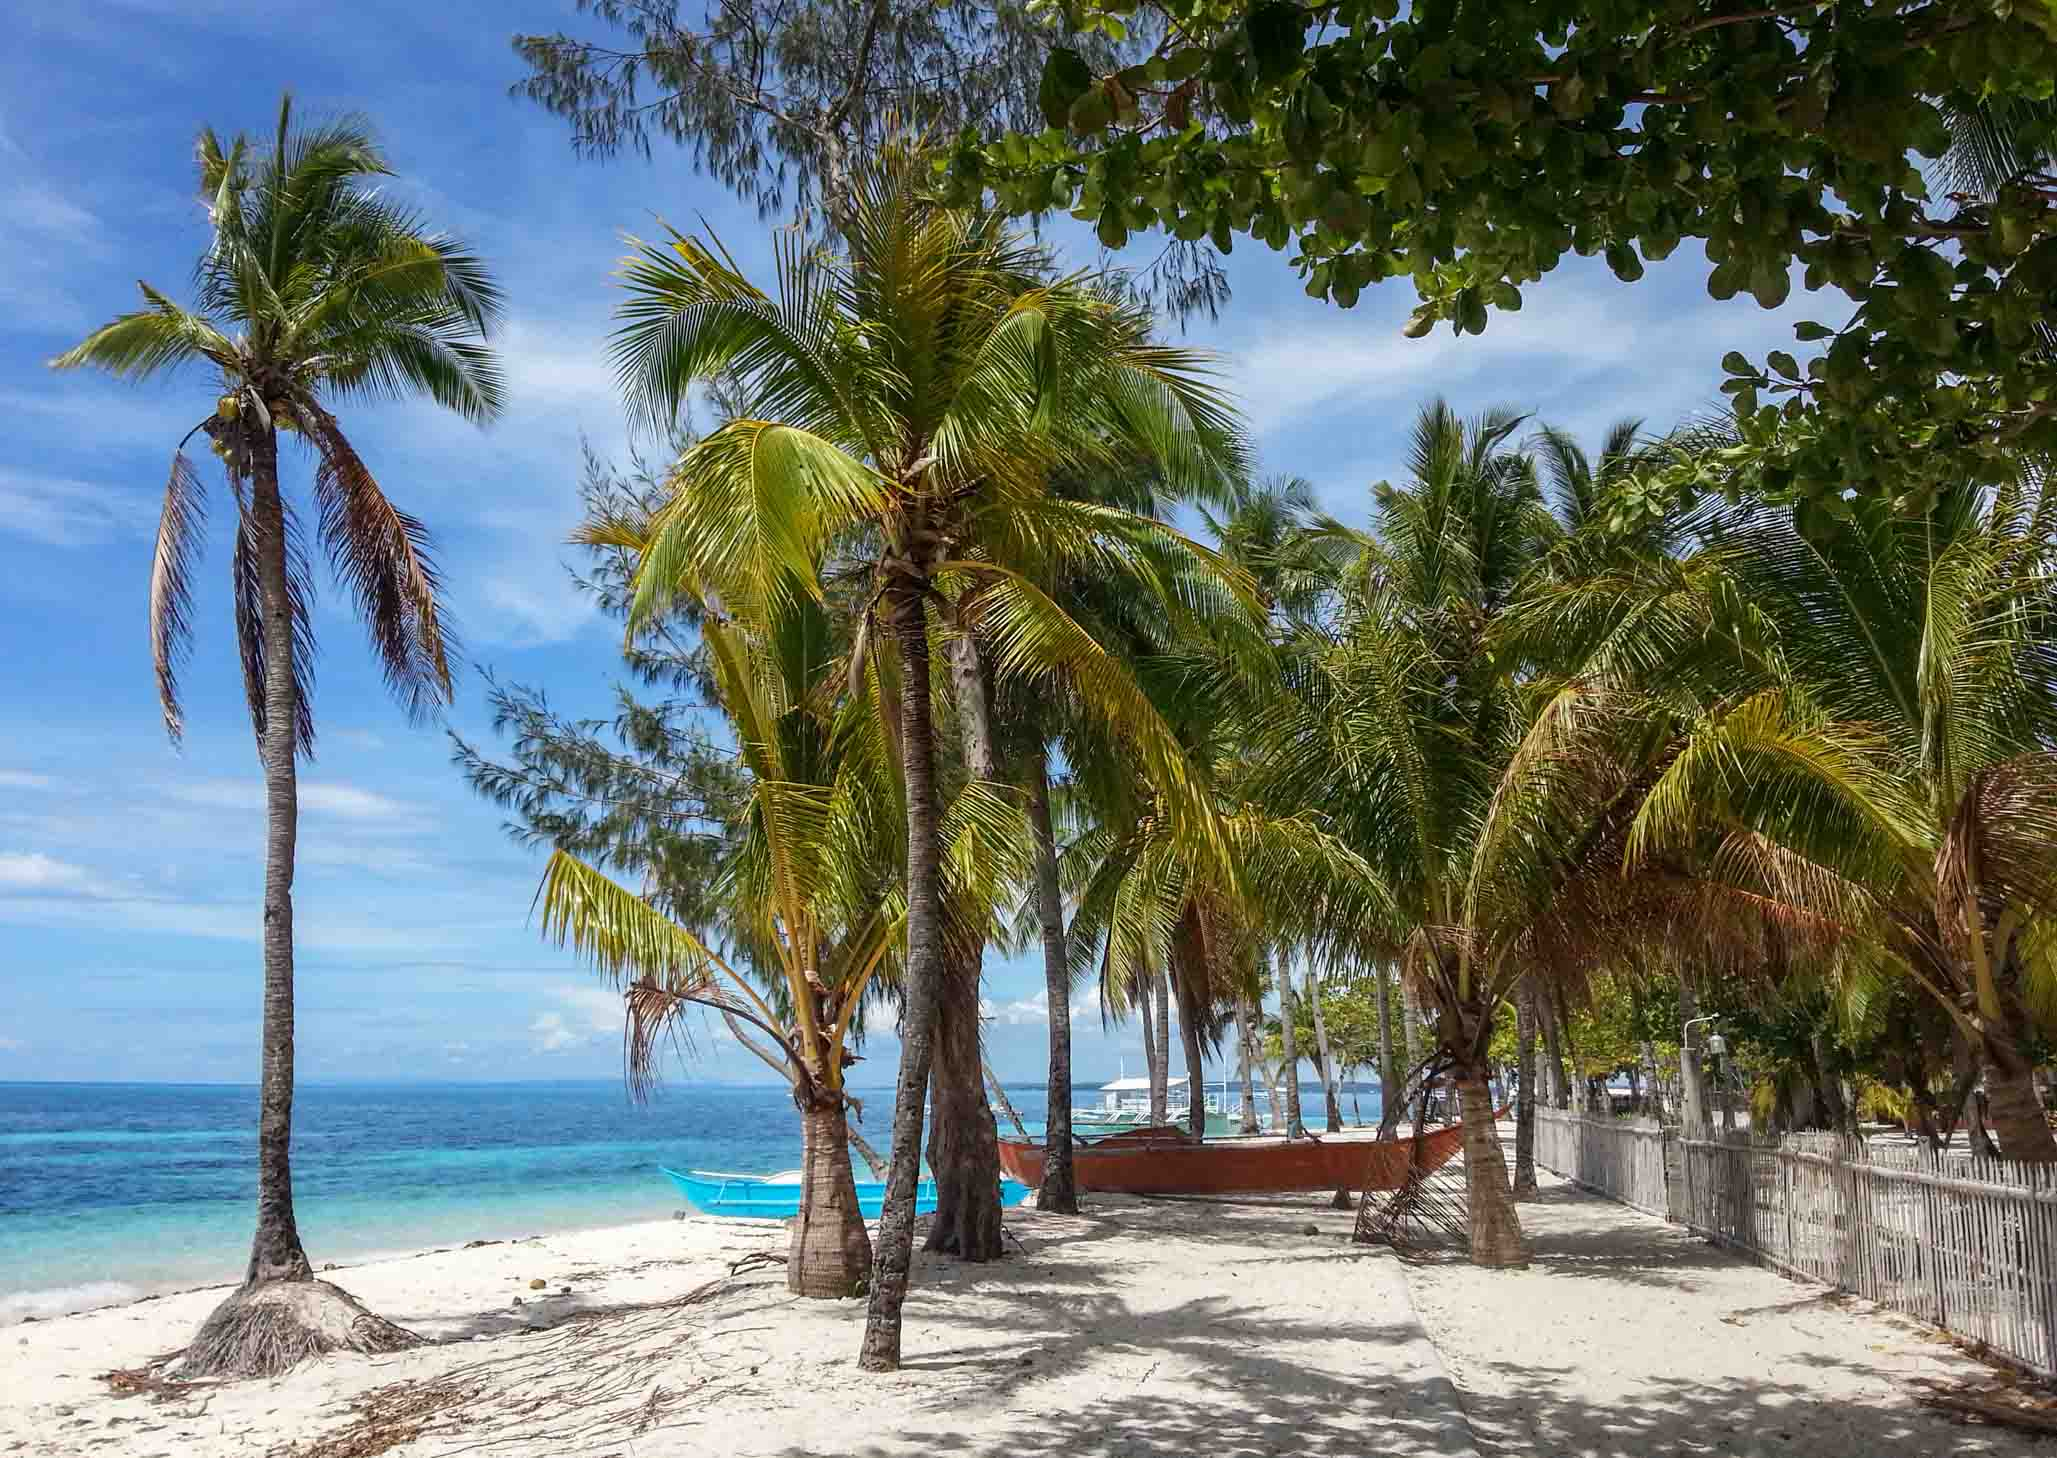 Malapascua Island - One The Hottest Travel Destination in the Philippines